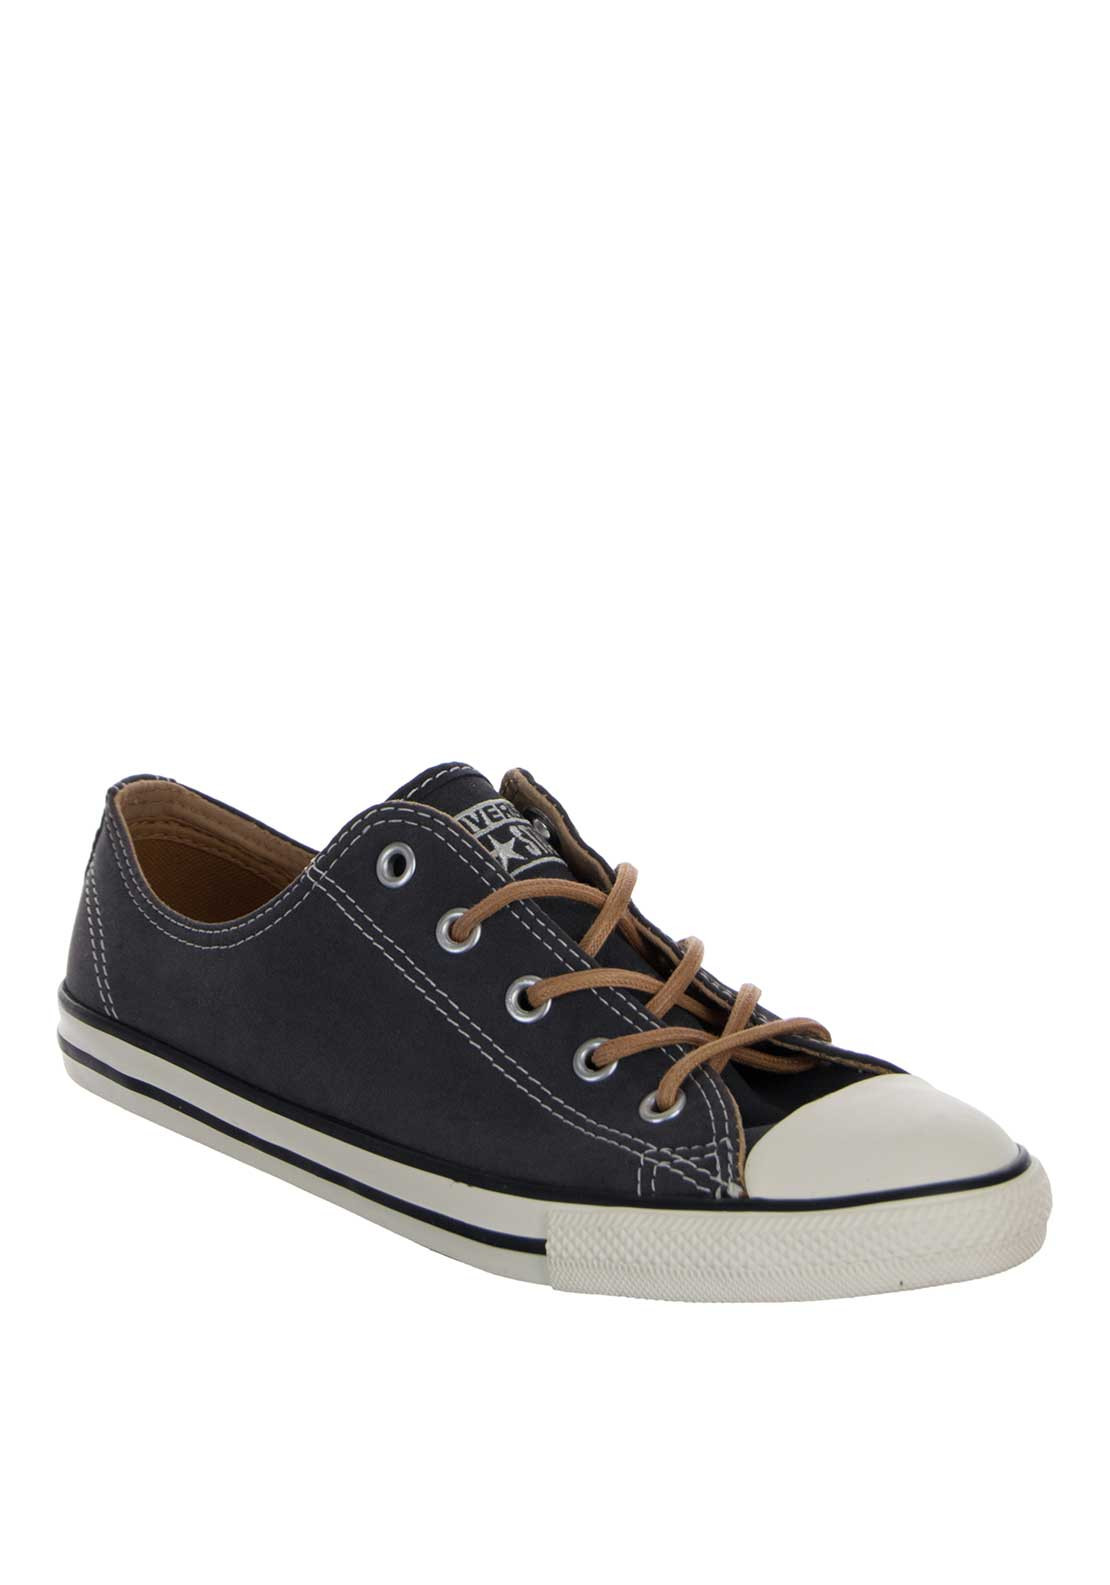 Converse Womens All Star Canvas Trainers, Almost Black